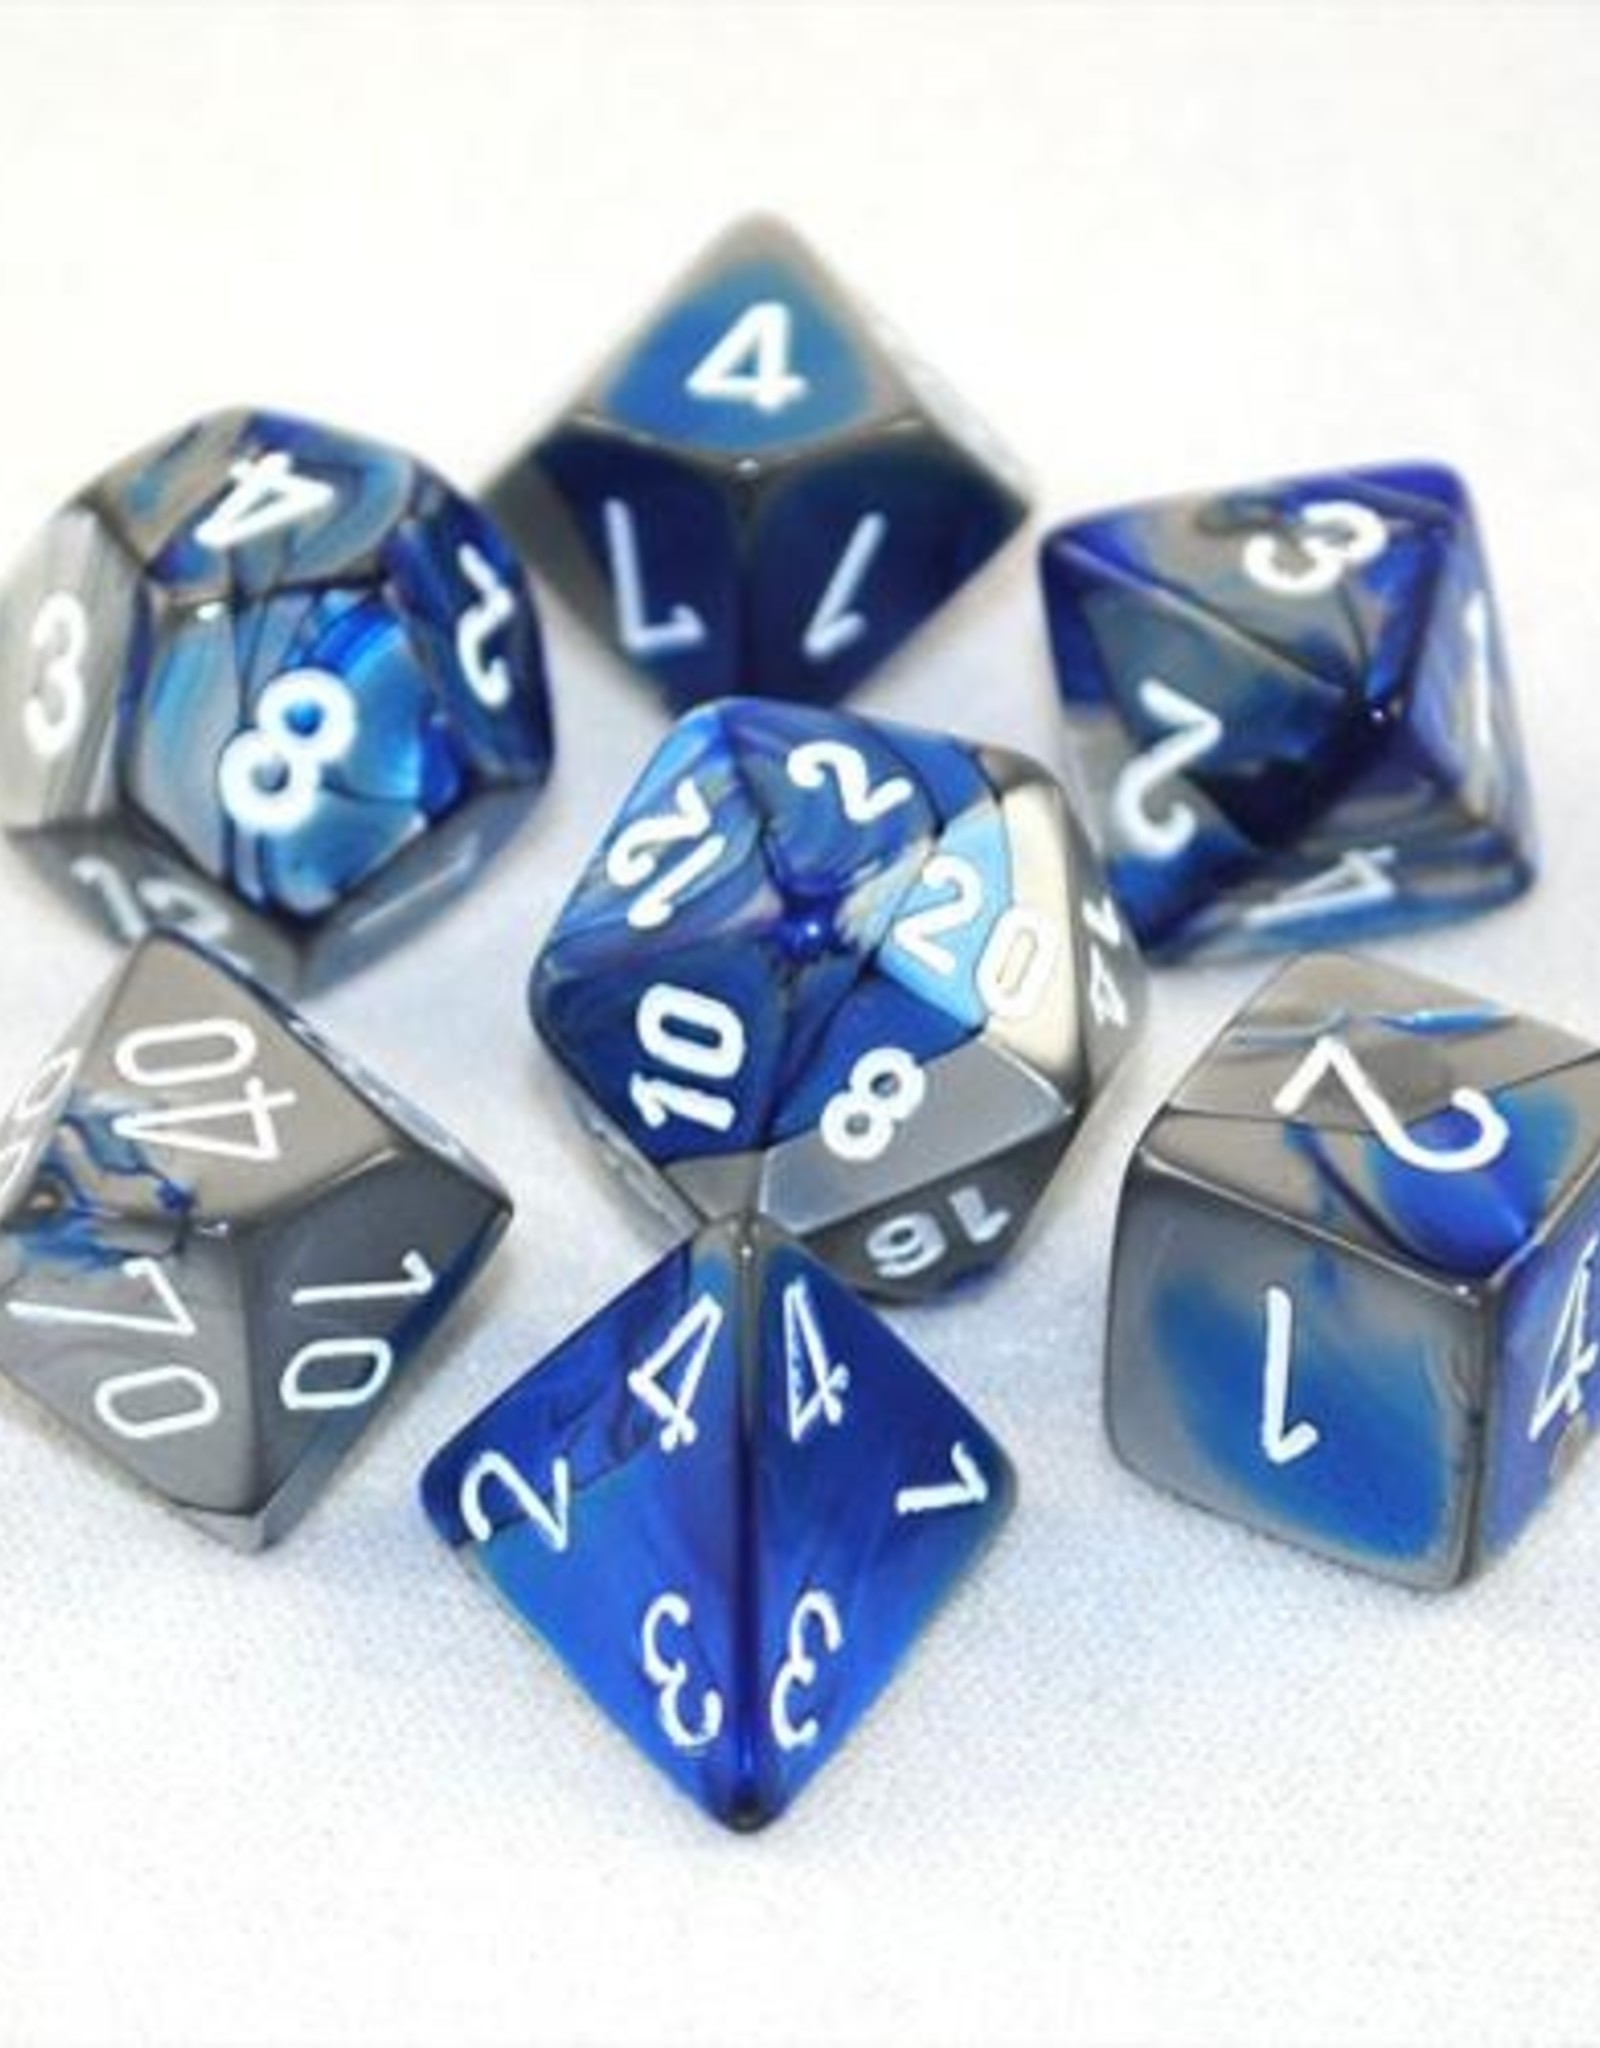 Chessex Chessex 7-Die set Gemini - Blue-Steel/White